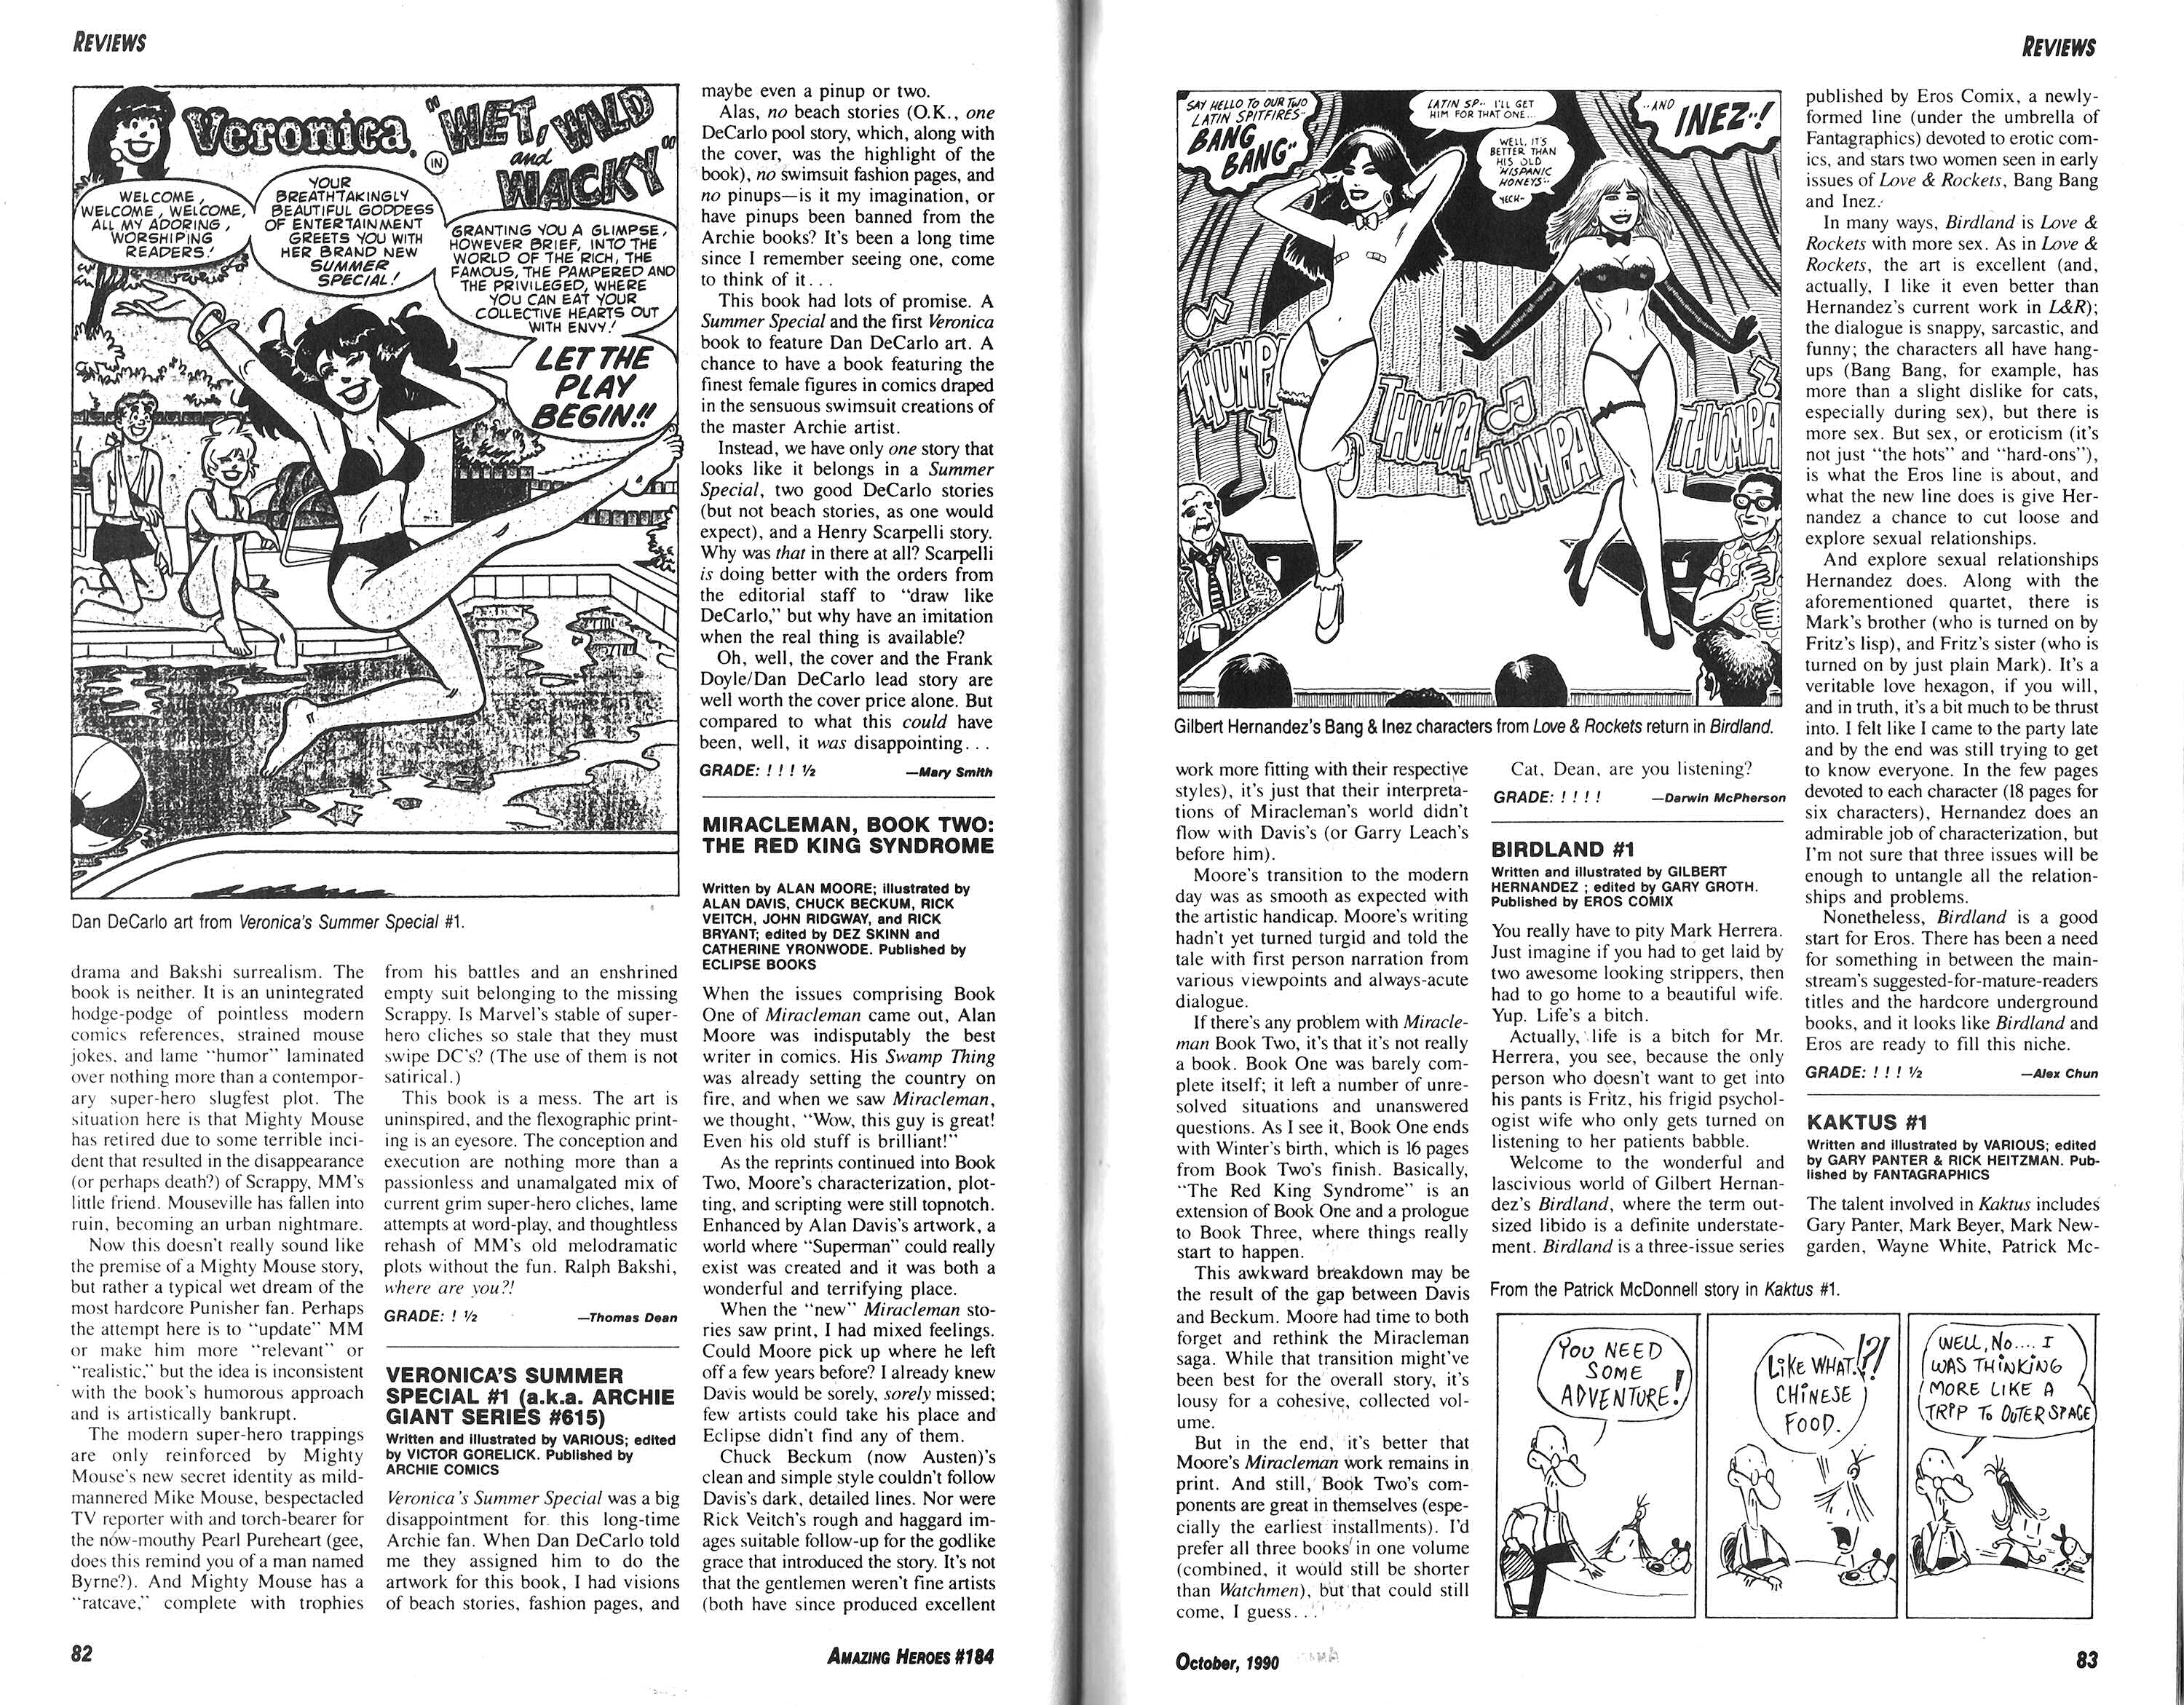 Read online Amazing Heroes comic -  Issue #184 - 58